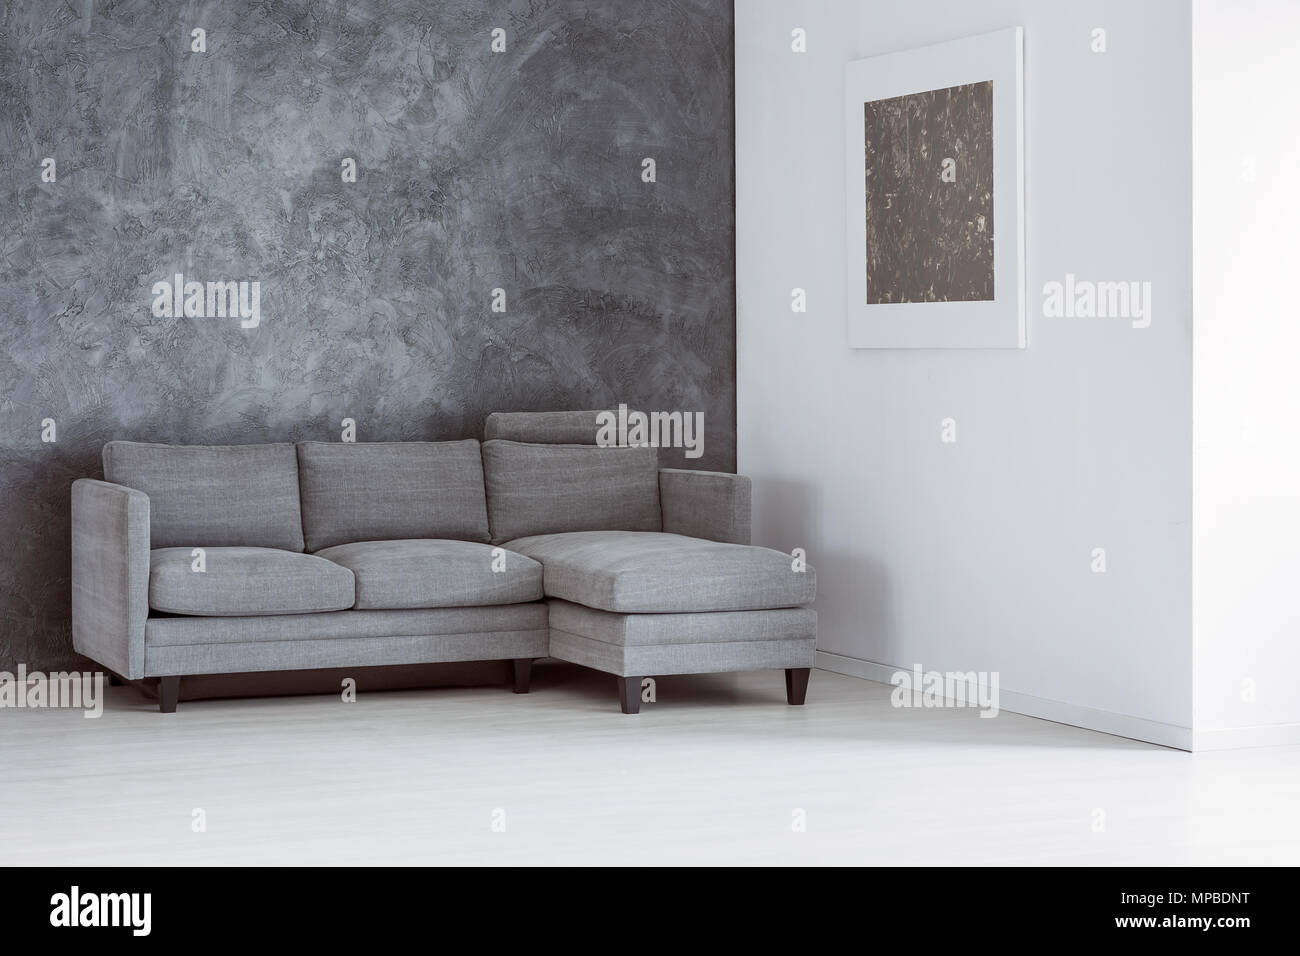 Simple Empty Living Room With Grey Sofa Against Concrete